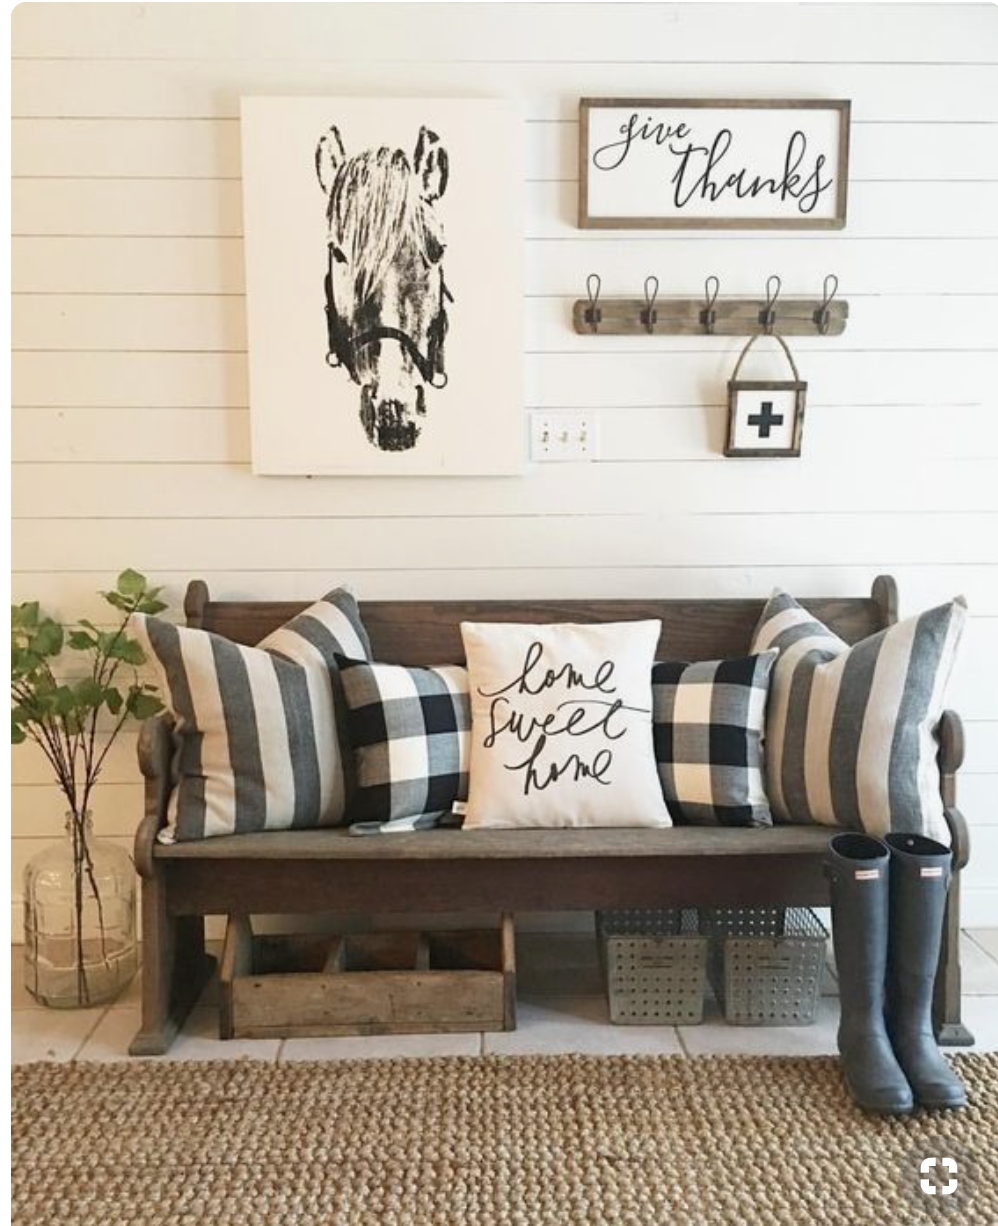 - The ModernFarmhouseIt is clean light colors with accents of wood items. Simple horse art and farm art looks great with this style but it should be simple. Farm items and animals go great with this style.